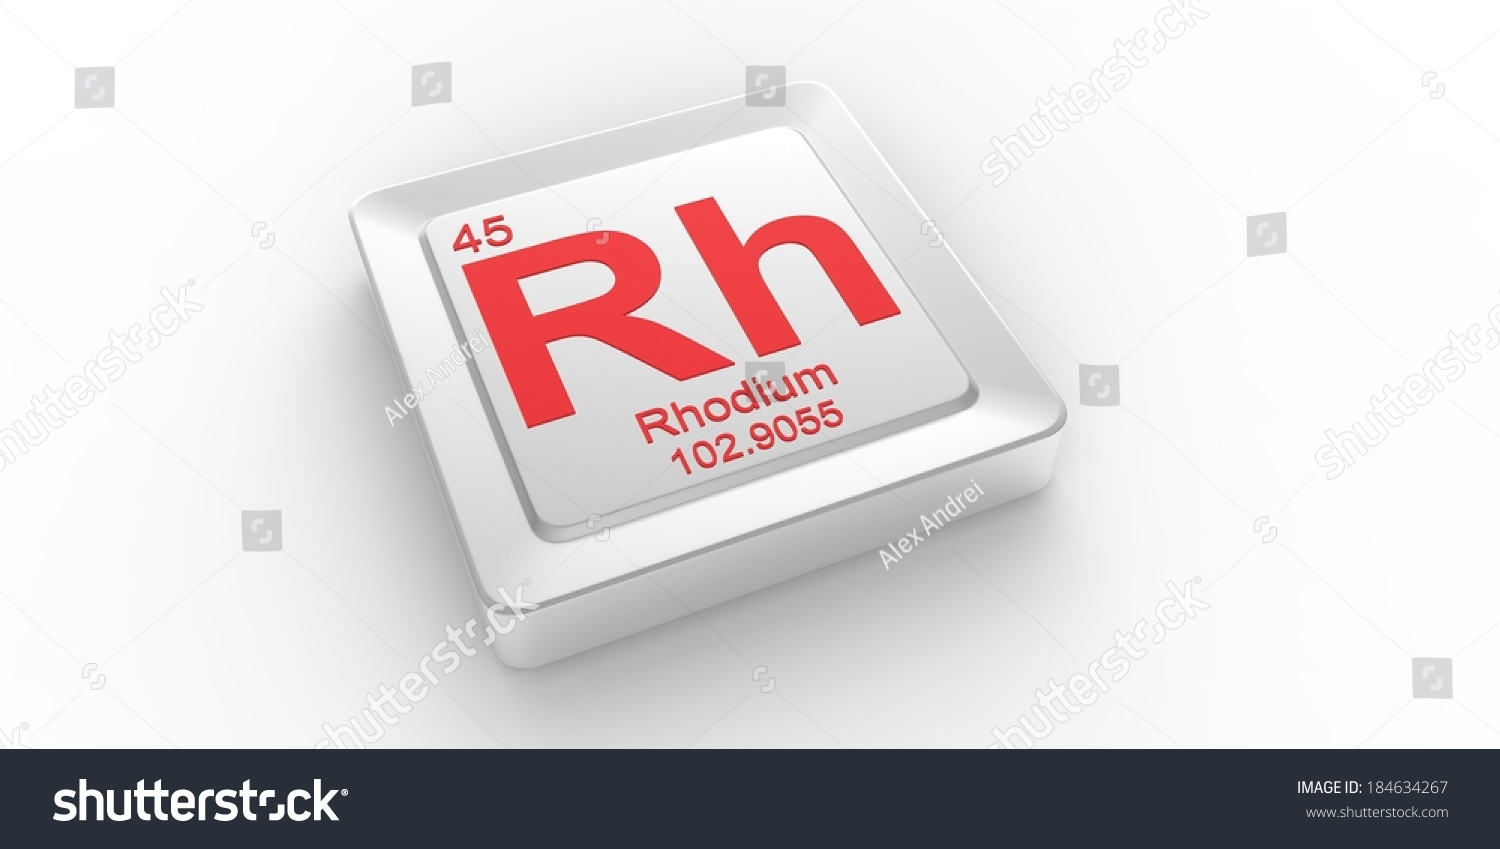 Rh symbol 45 material rhodium chemical stock illustration rh symbol 45 material for rhodium chemical element of the periodic table gamestrikefo Images